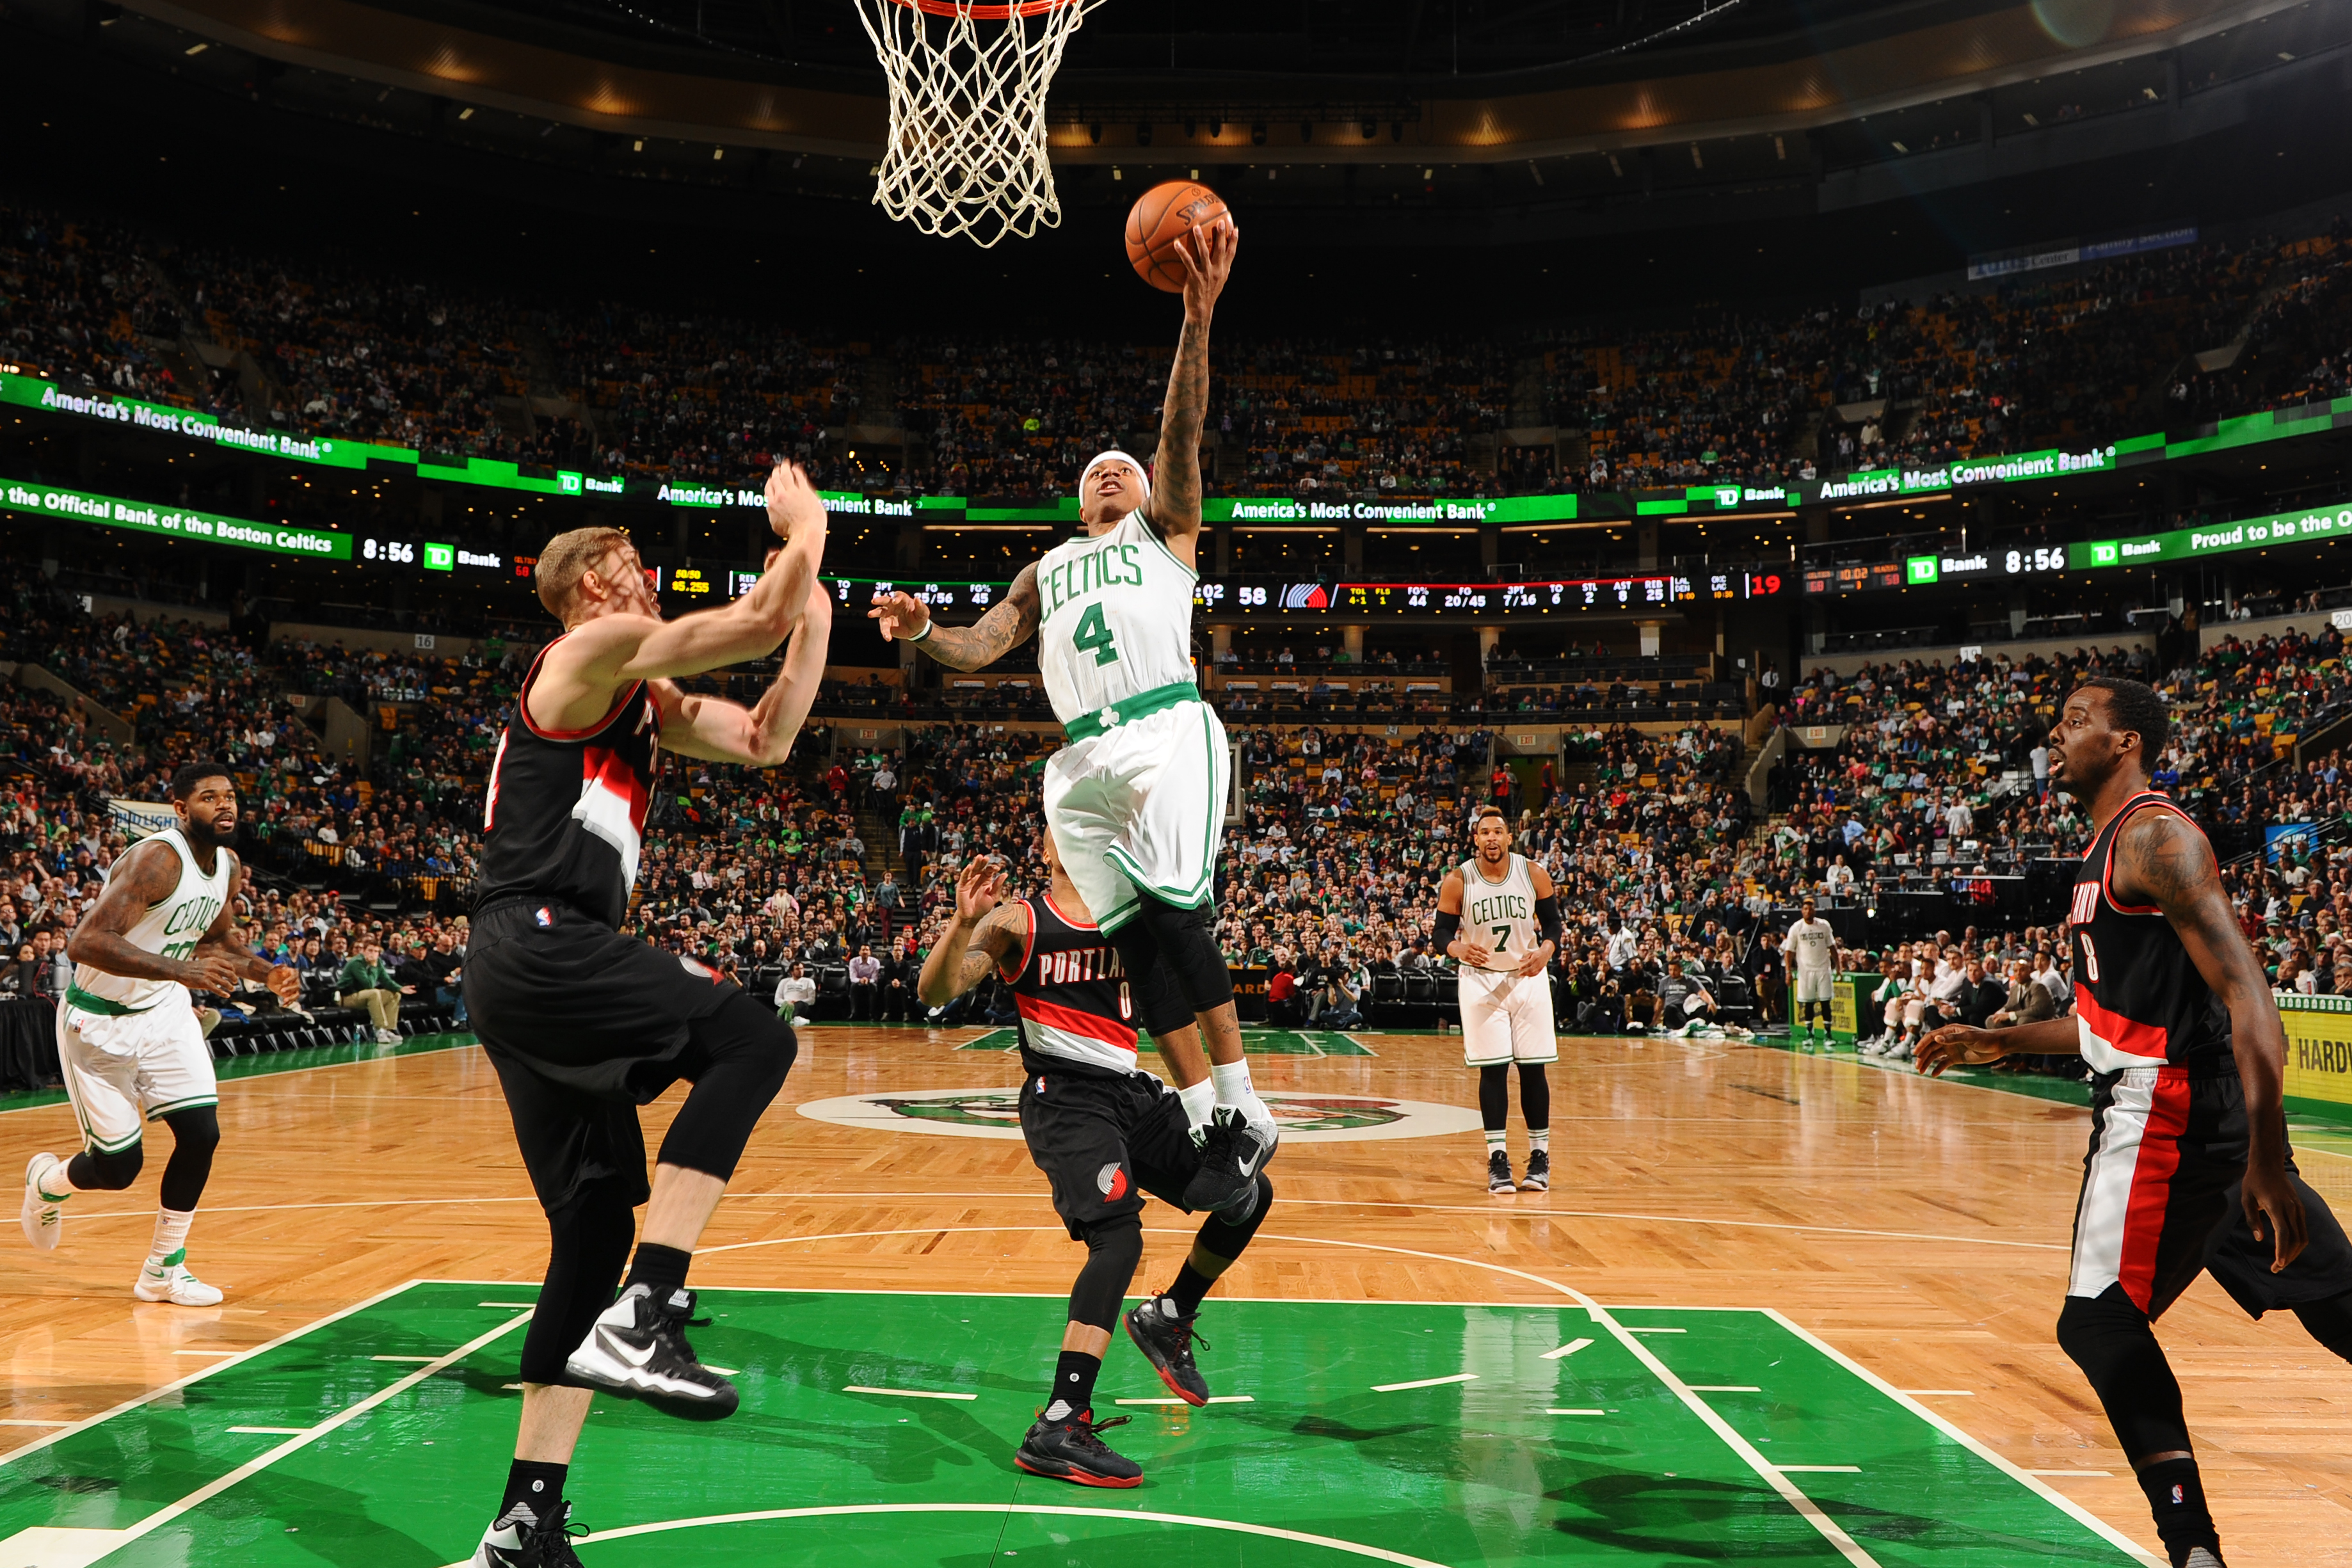 BOSTON, MA  - MARCH 2: Isaiah Thomas #4 of the Boston Celtics goes for the lay up against the Portland Trail Blazers during the game on March 2, 2016 at TD Garden in Boston, Massachusetts. (Photo by Brian Babineau/NBAE via Getty Images)